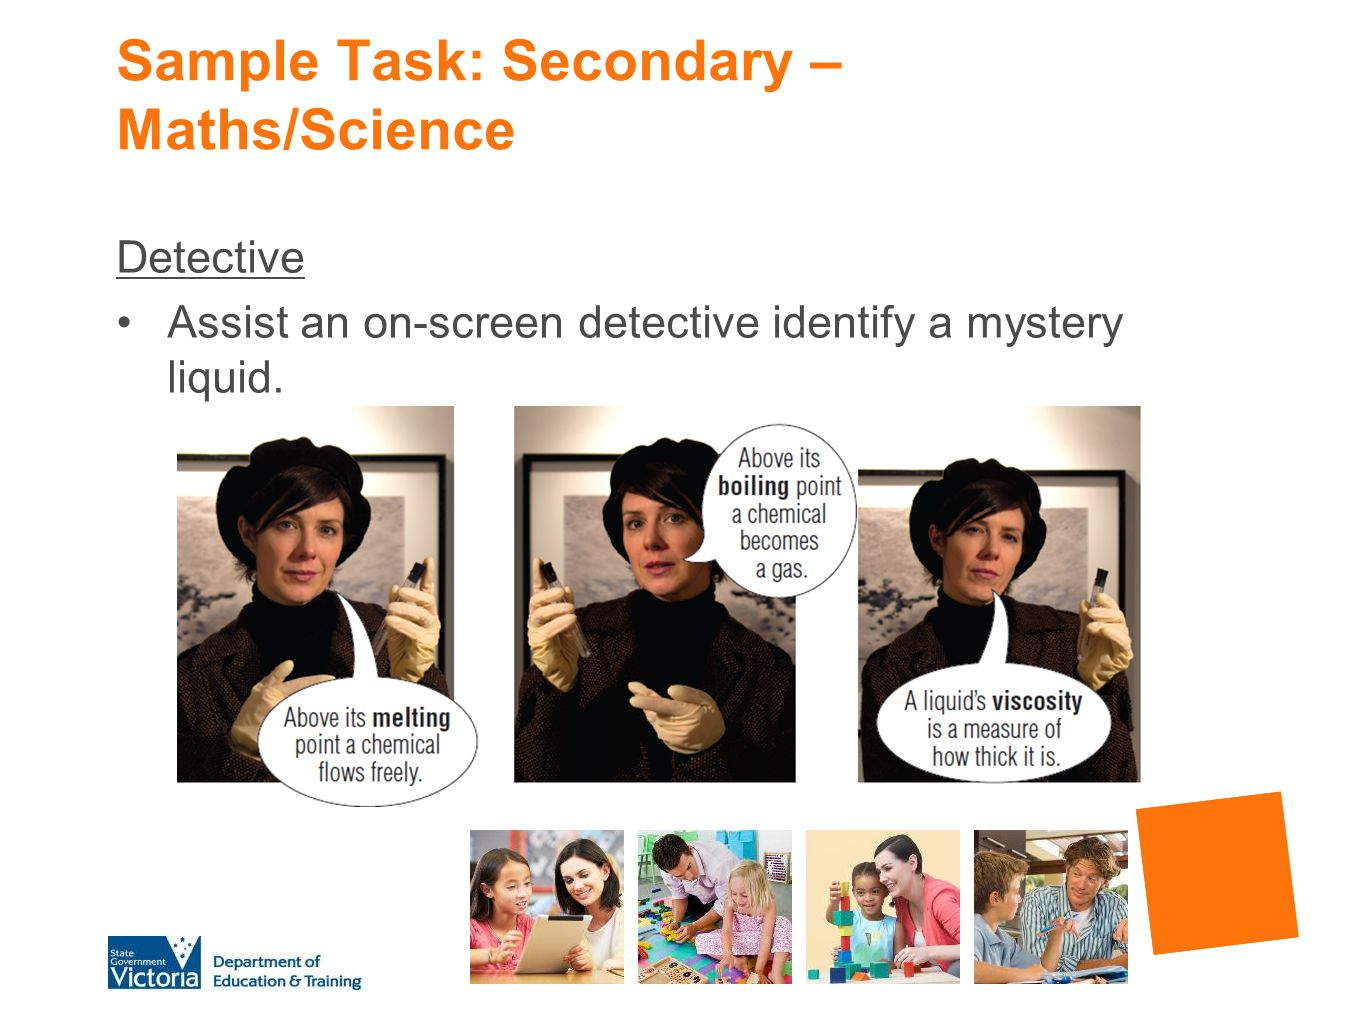 Sample Task: Secondary – Maths/Science